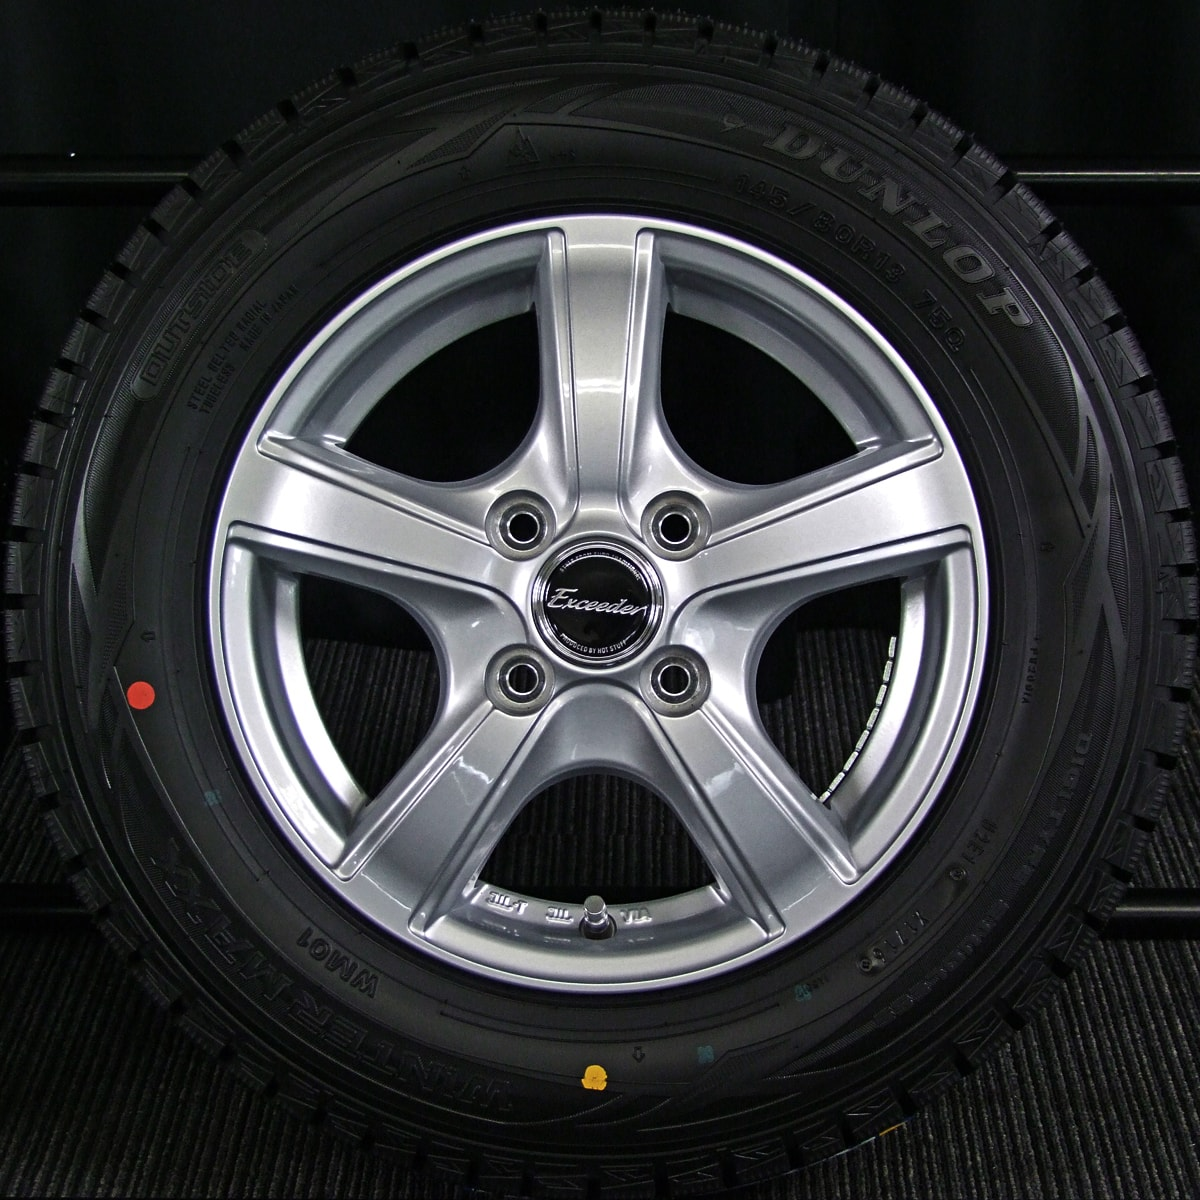 HOT STUFF Exceeder EXV シルバー DUNLOP WINTER MAXX WM01 145/80R13 4本SET